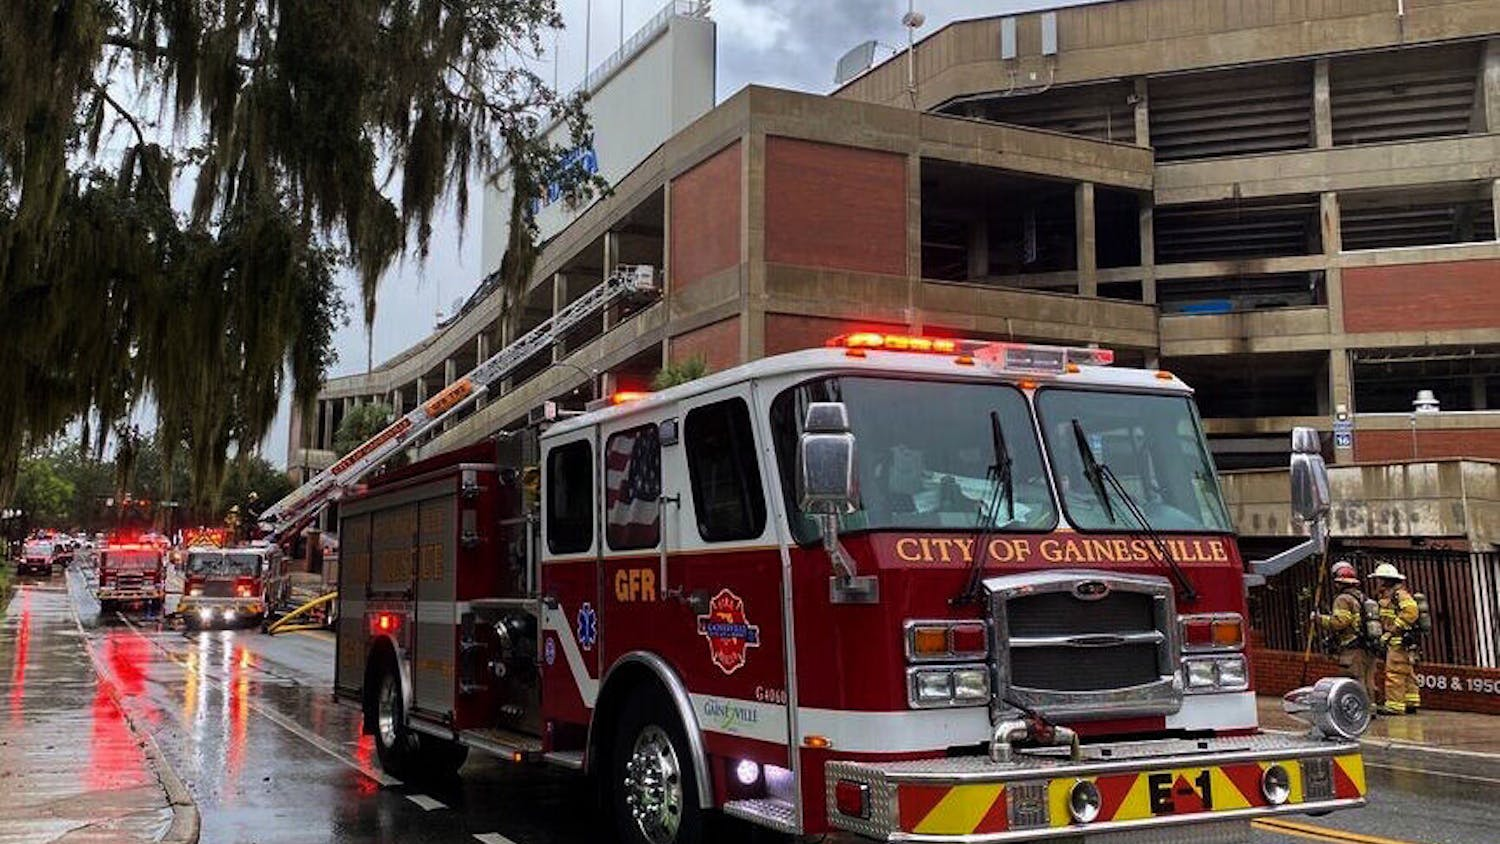 The Gainesville Fire and Rescue rushed to put out a fire at the Ben Hill Griffin Stadium on September 12, 2020. Fire Marshals will investigate the exact cause, per Gainesville Fire Rescue on the scene.